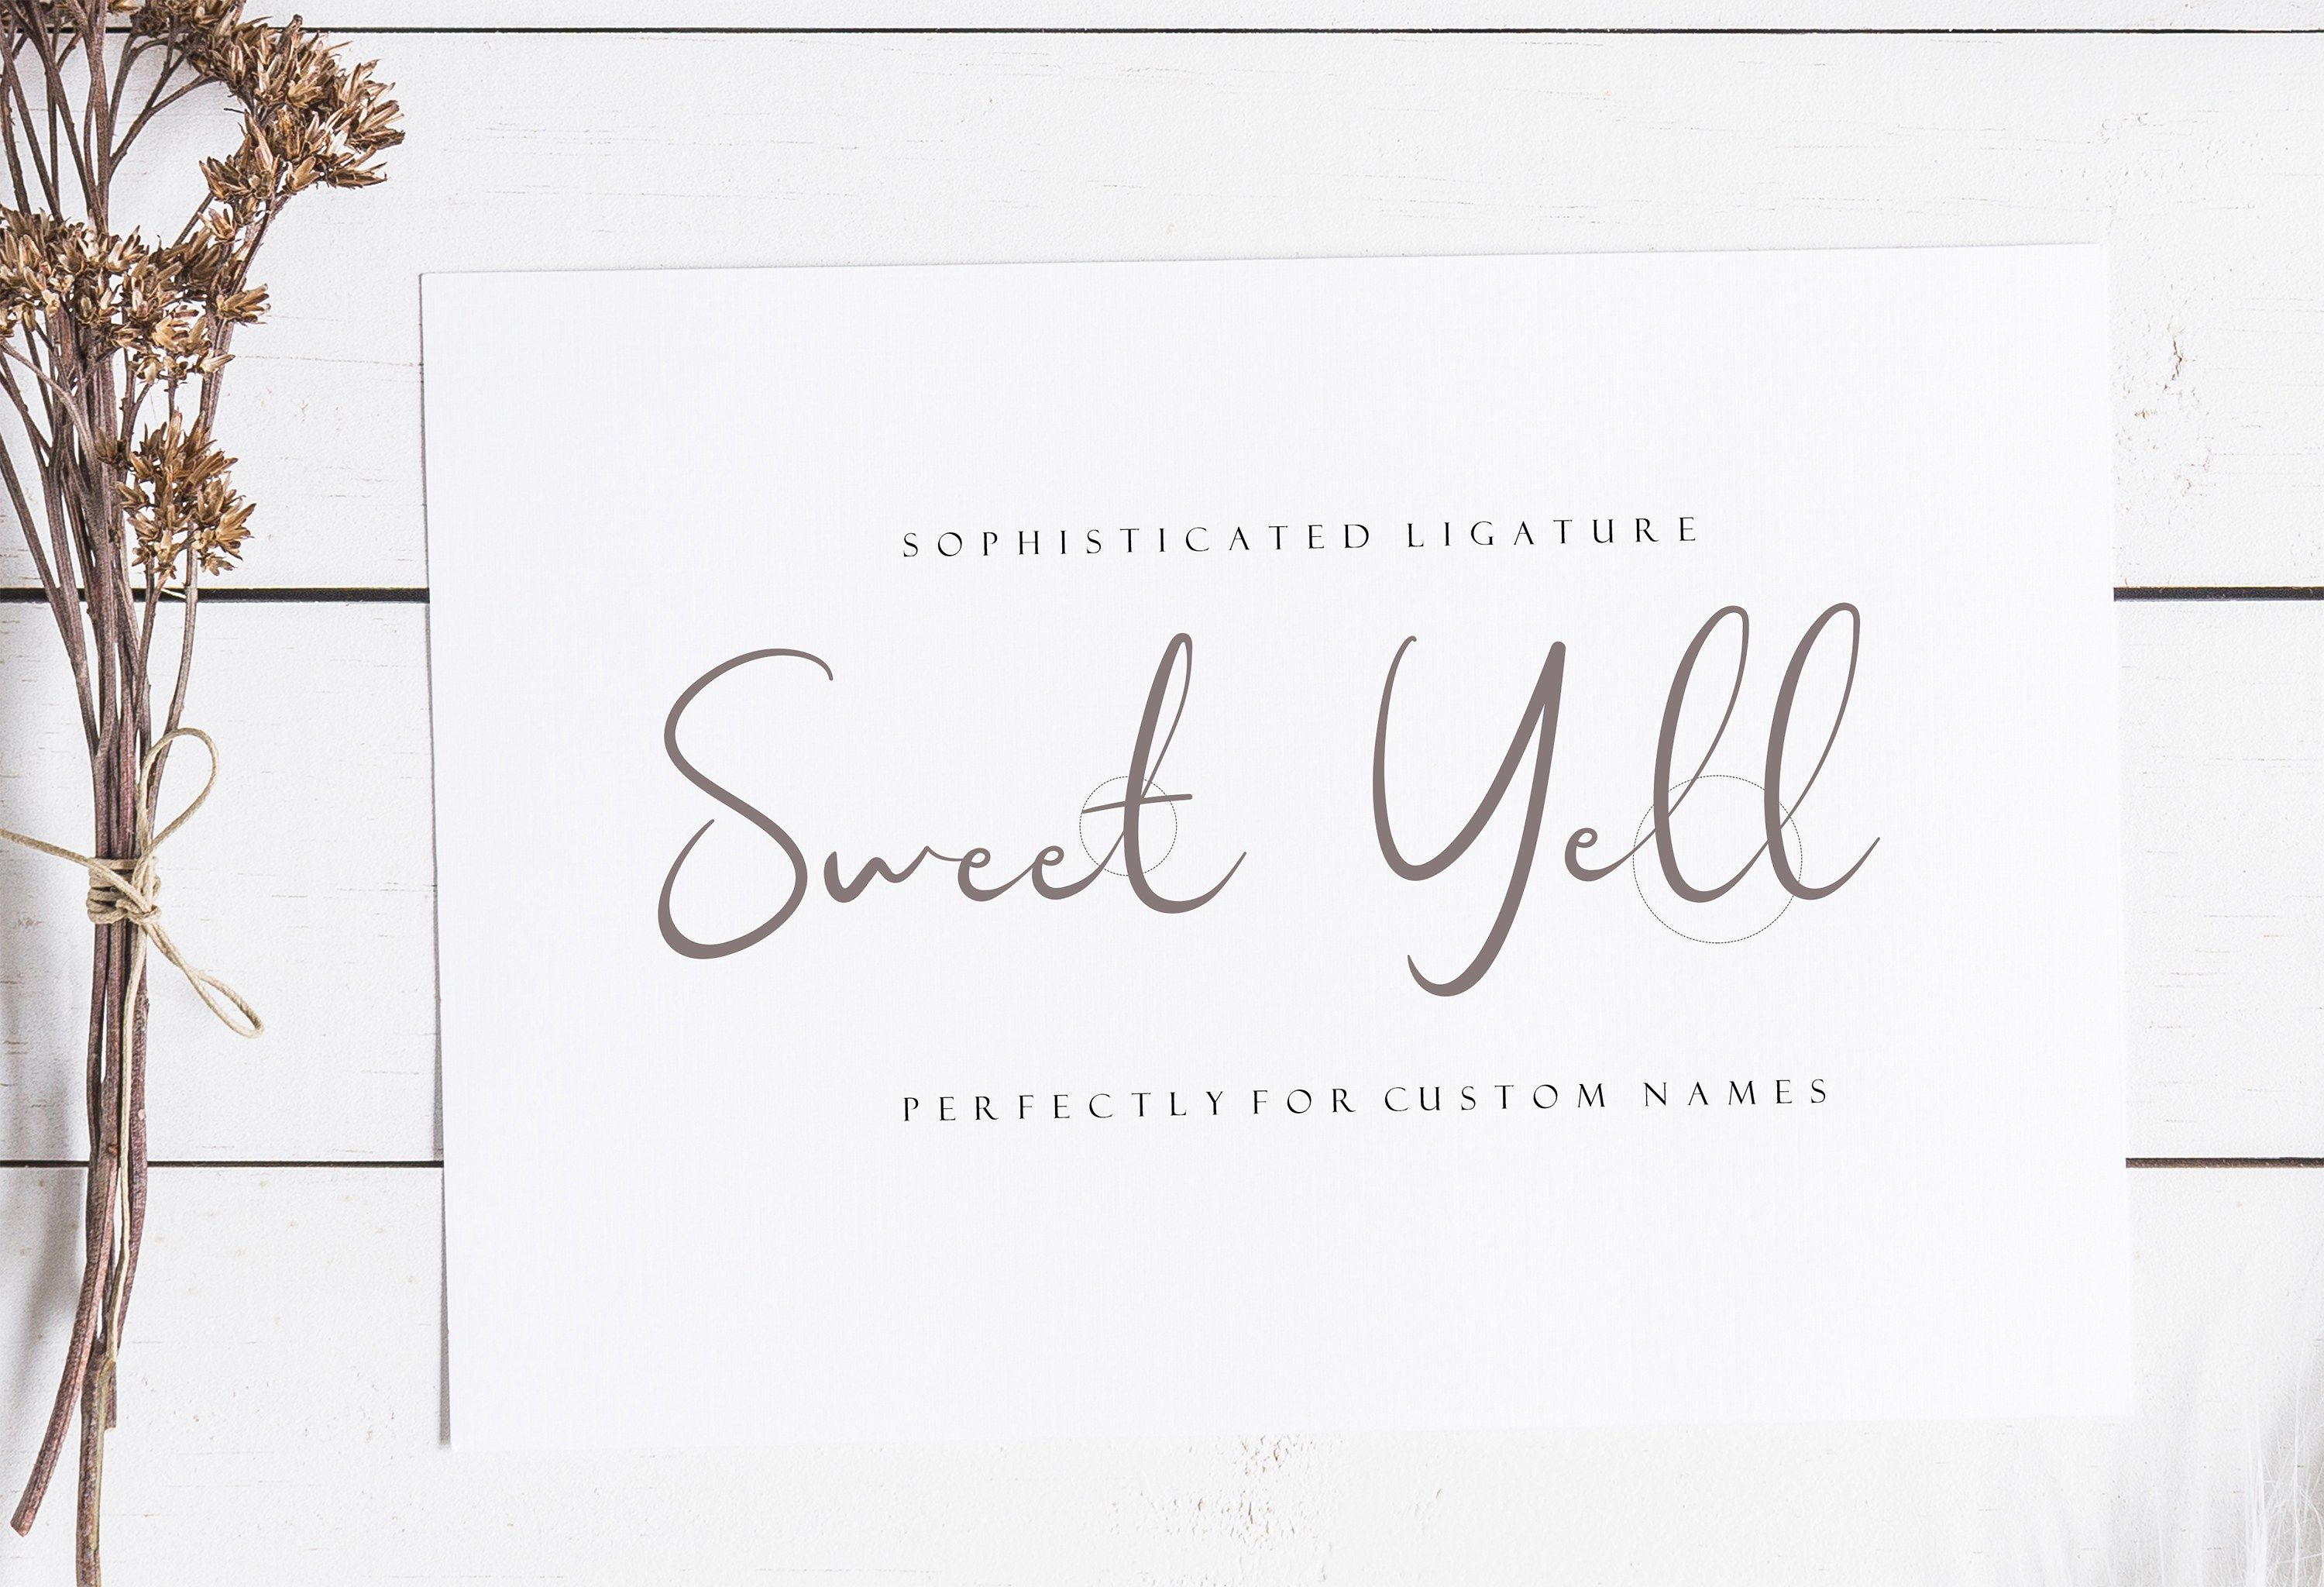 Sweet Yell A Fun Handwritting in 2020 Recipe book